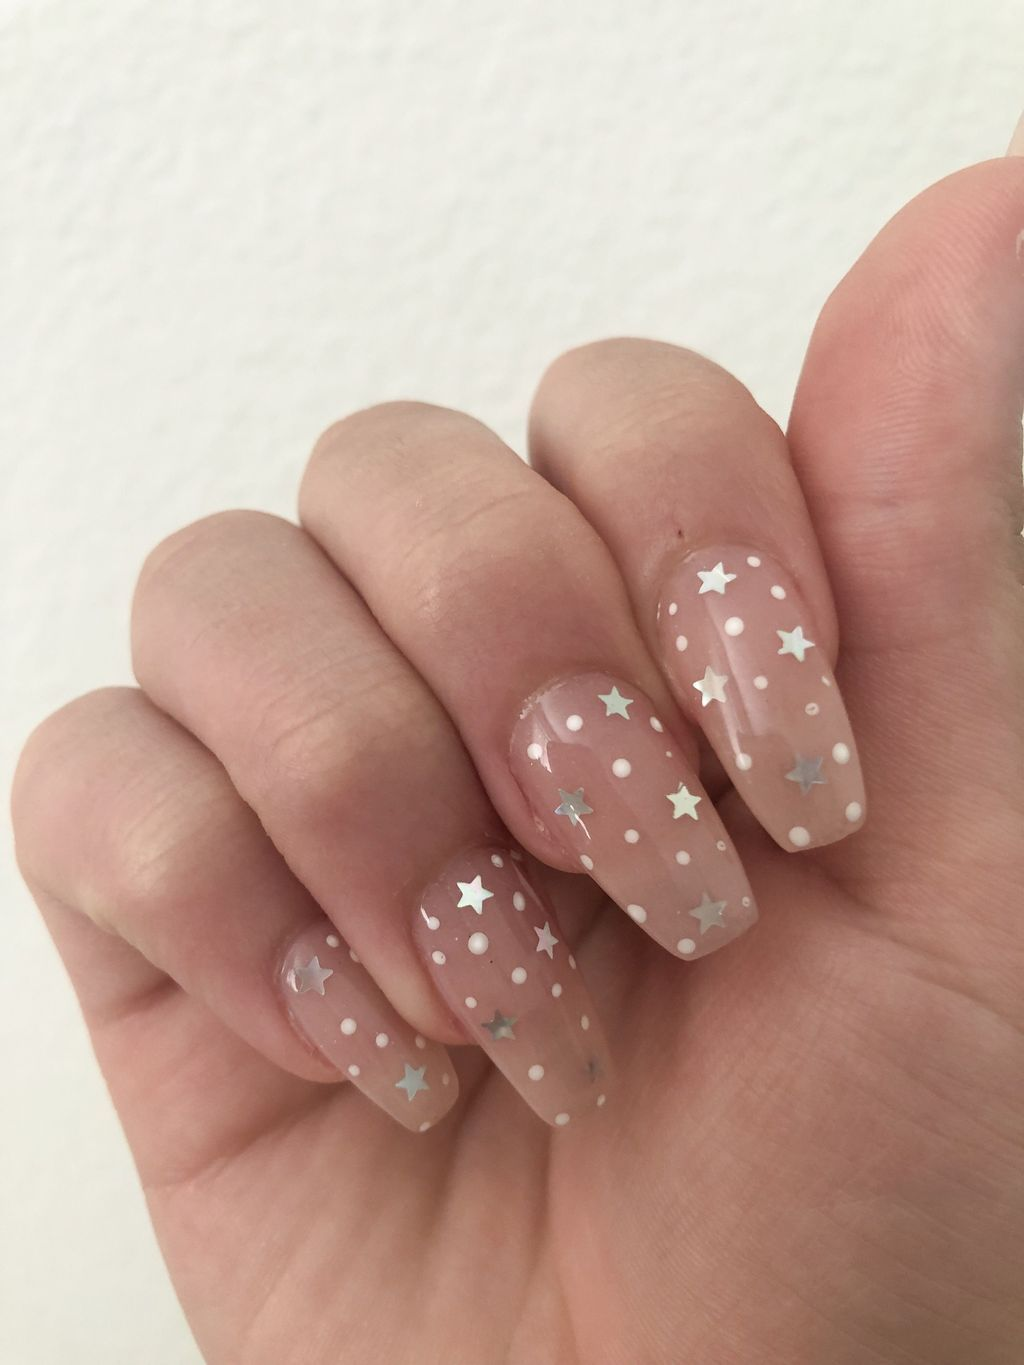 40 Perfect Acrylic Nail Designs Ideas For New Year 2020 In 2020 Pretty Acrylic Nails Coffin Nails Designs Star Nail Designs